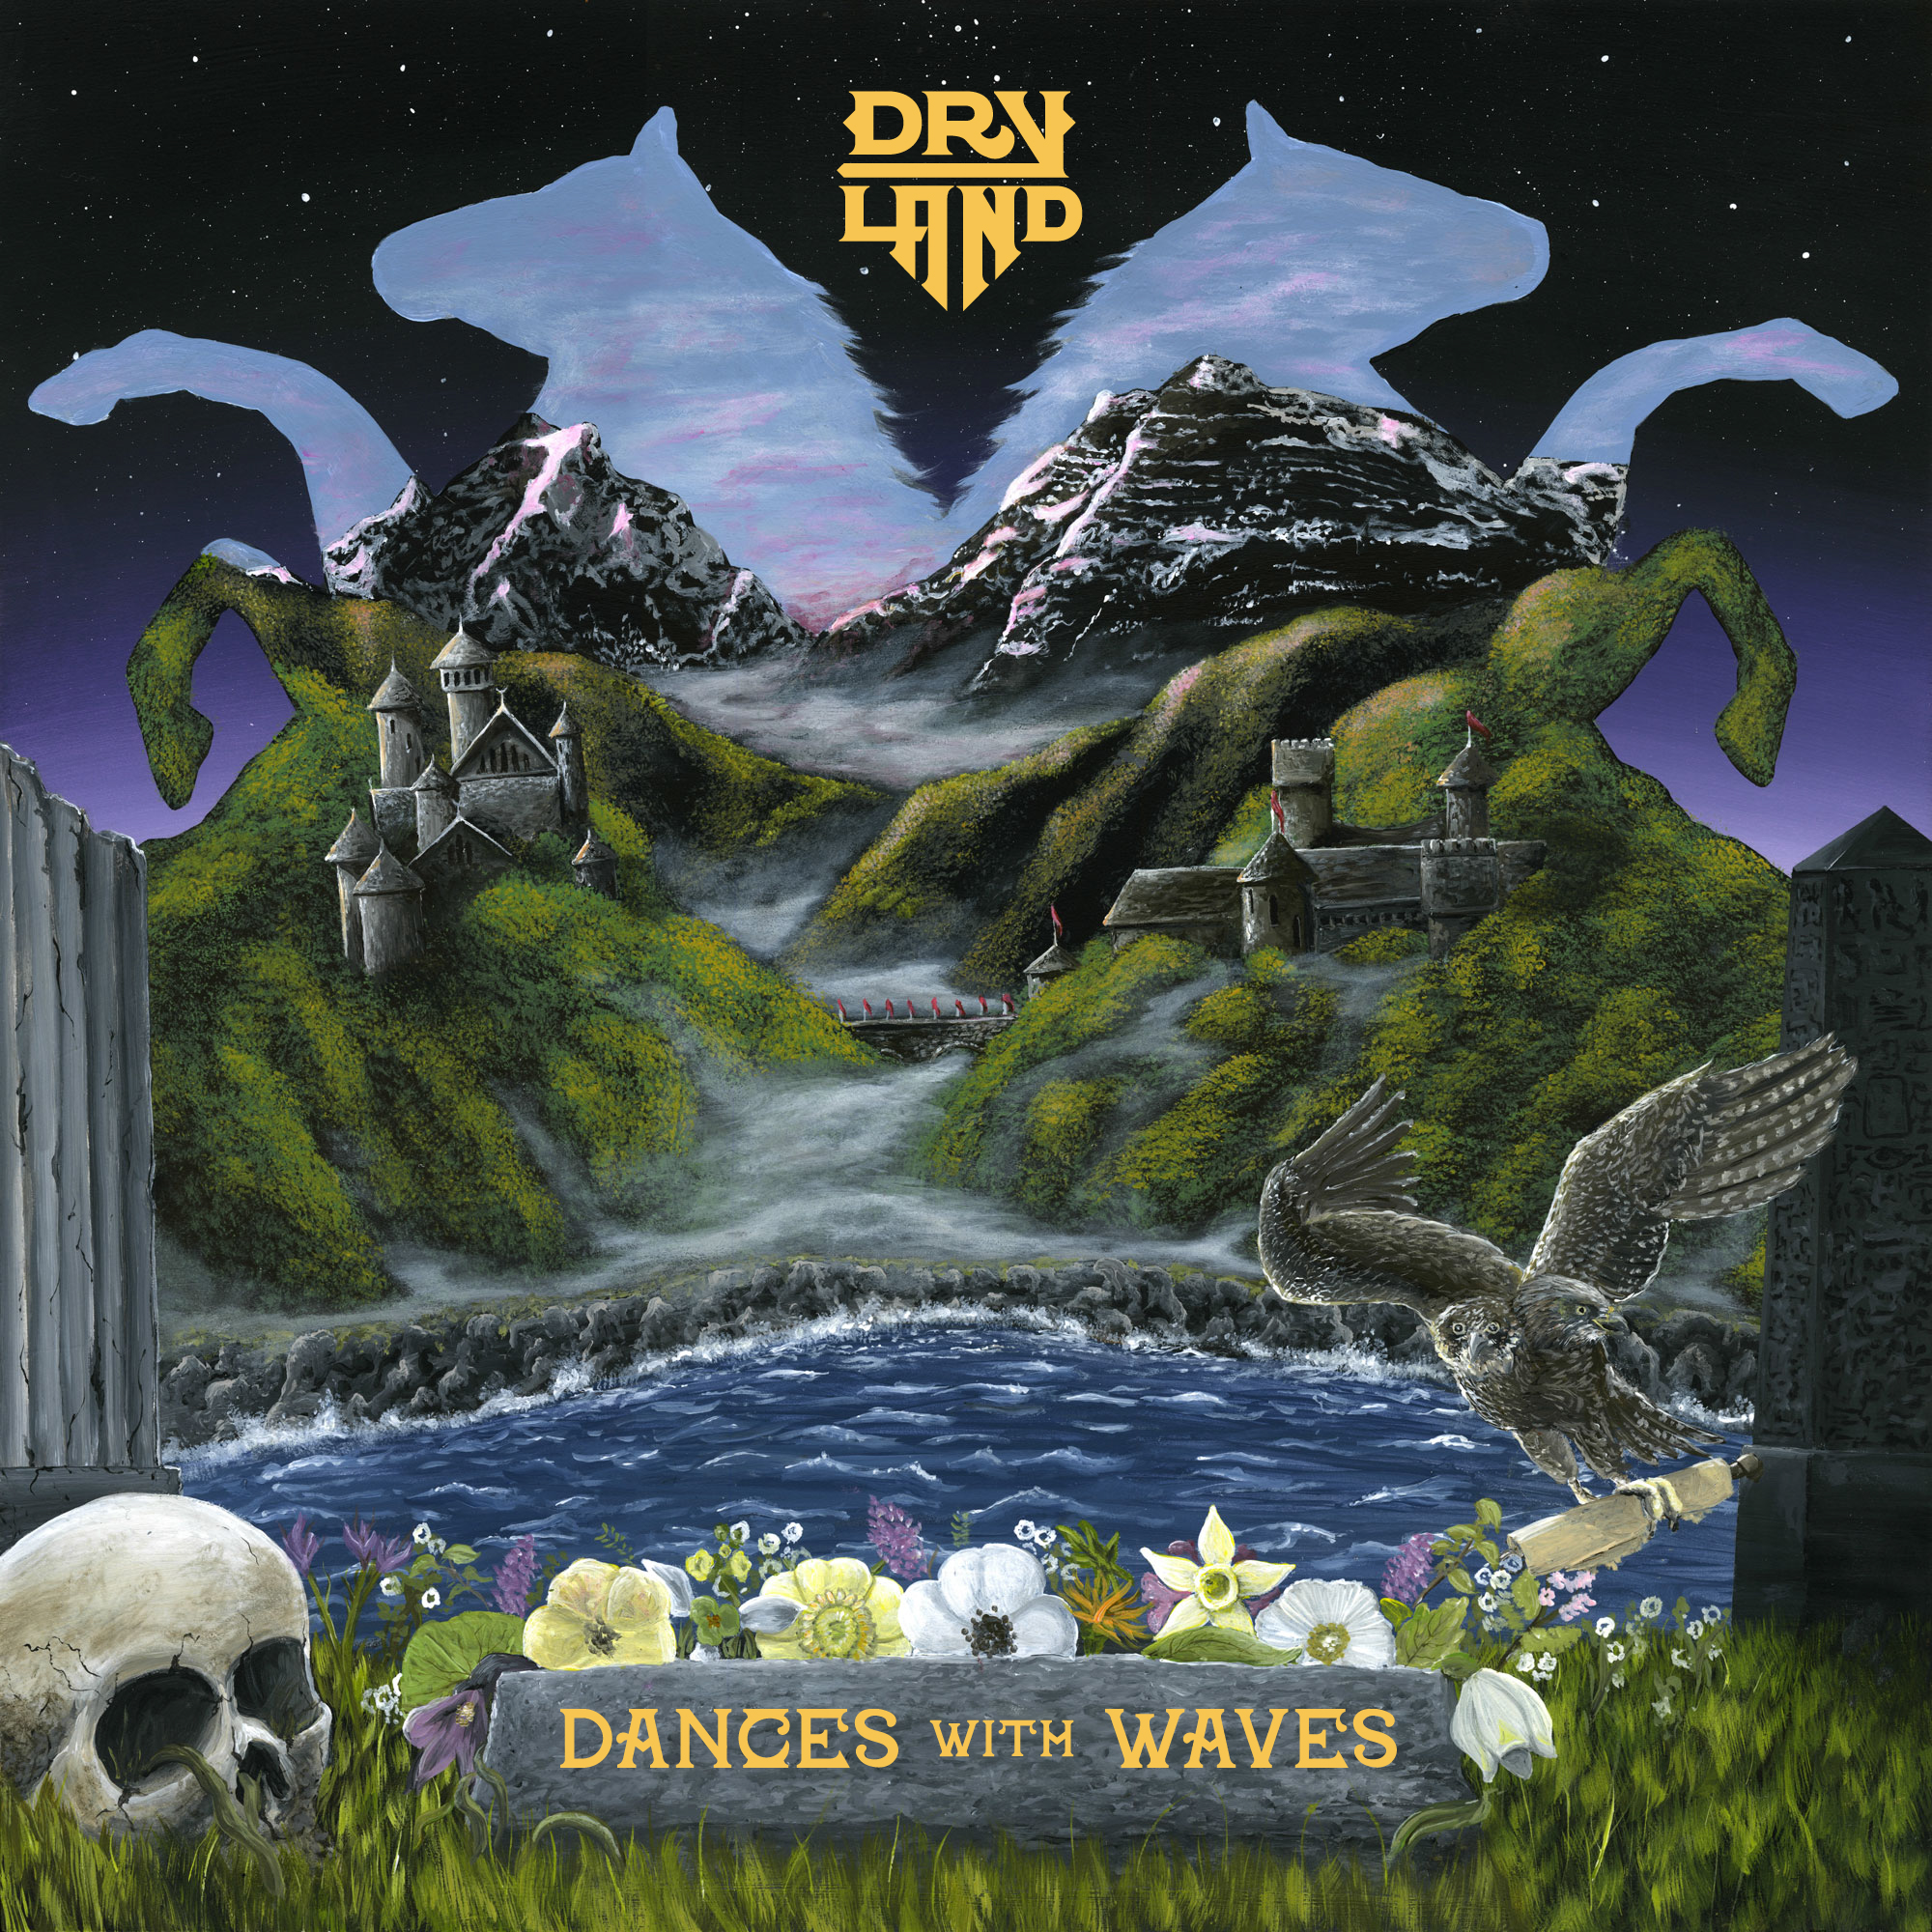 dryland dances with waves